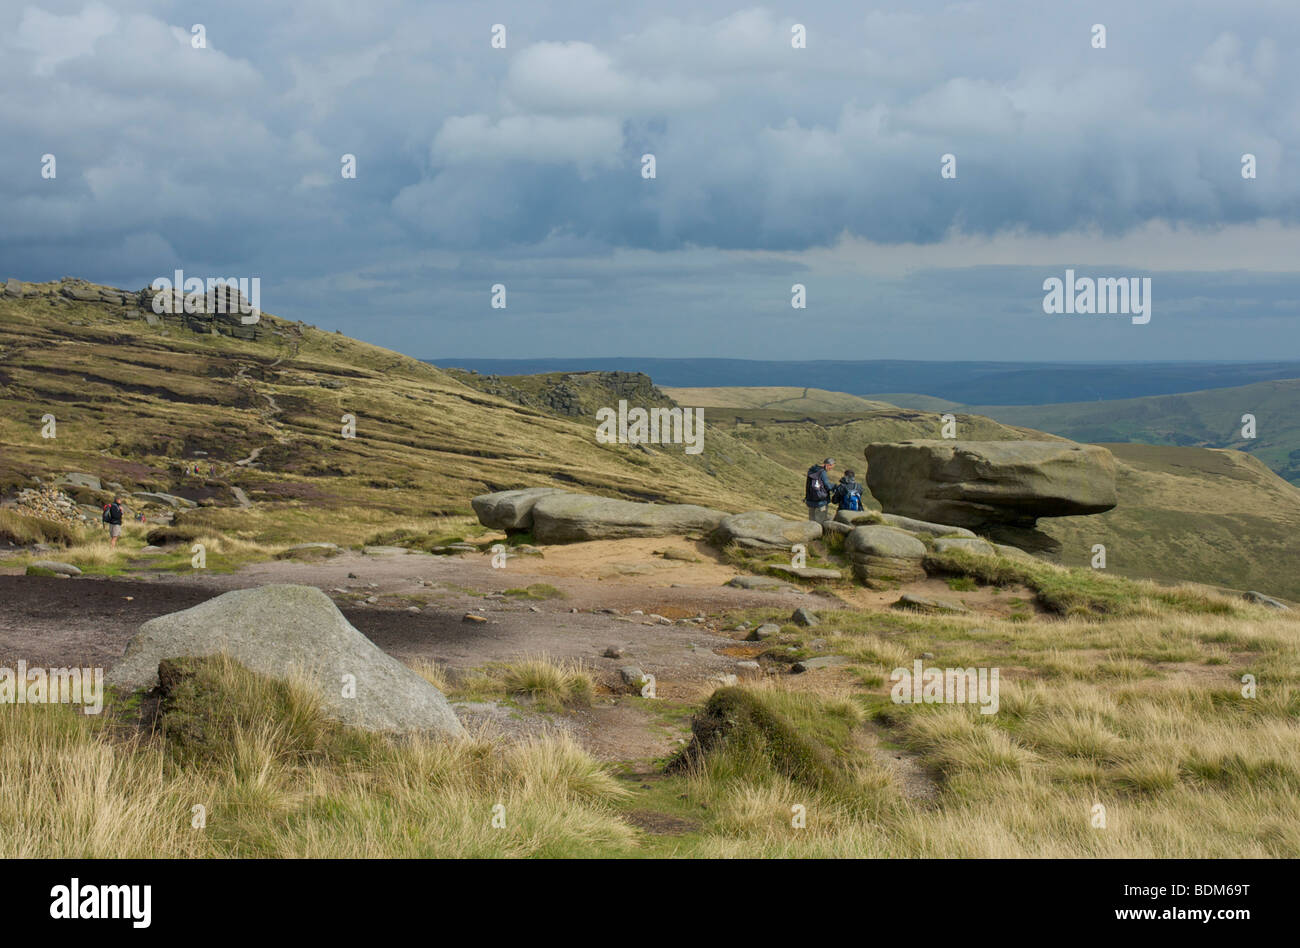 Two walkers at the Noe Stool on Kinder Scout, near Edale, Peak National Park, Derbyshire, England UK - Stock Image